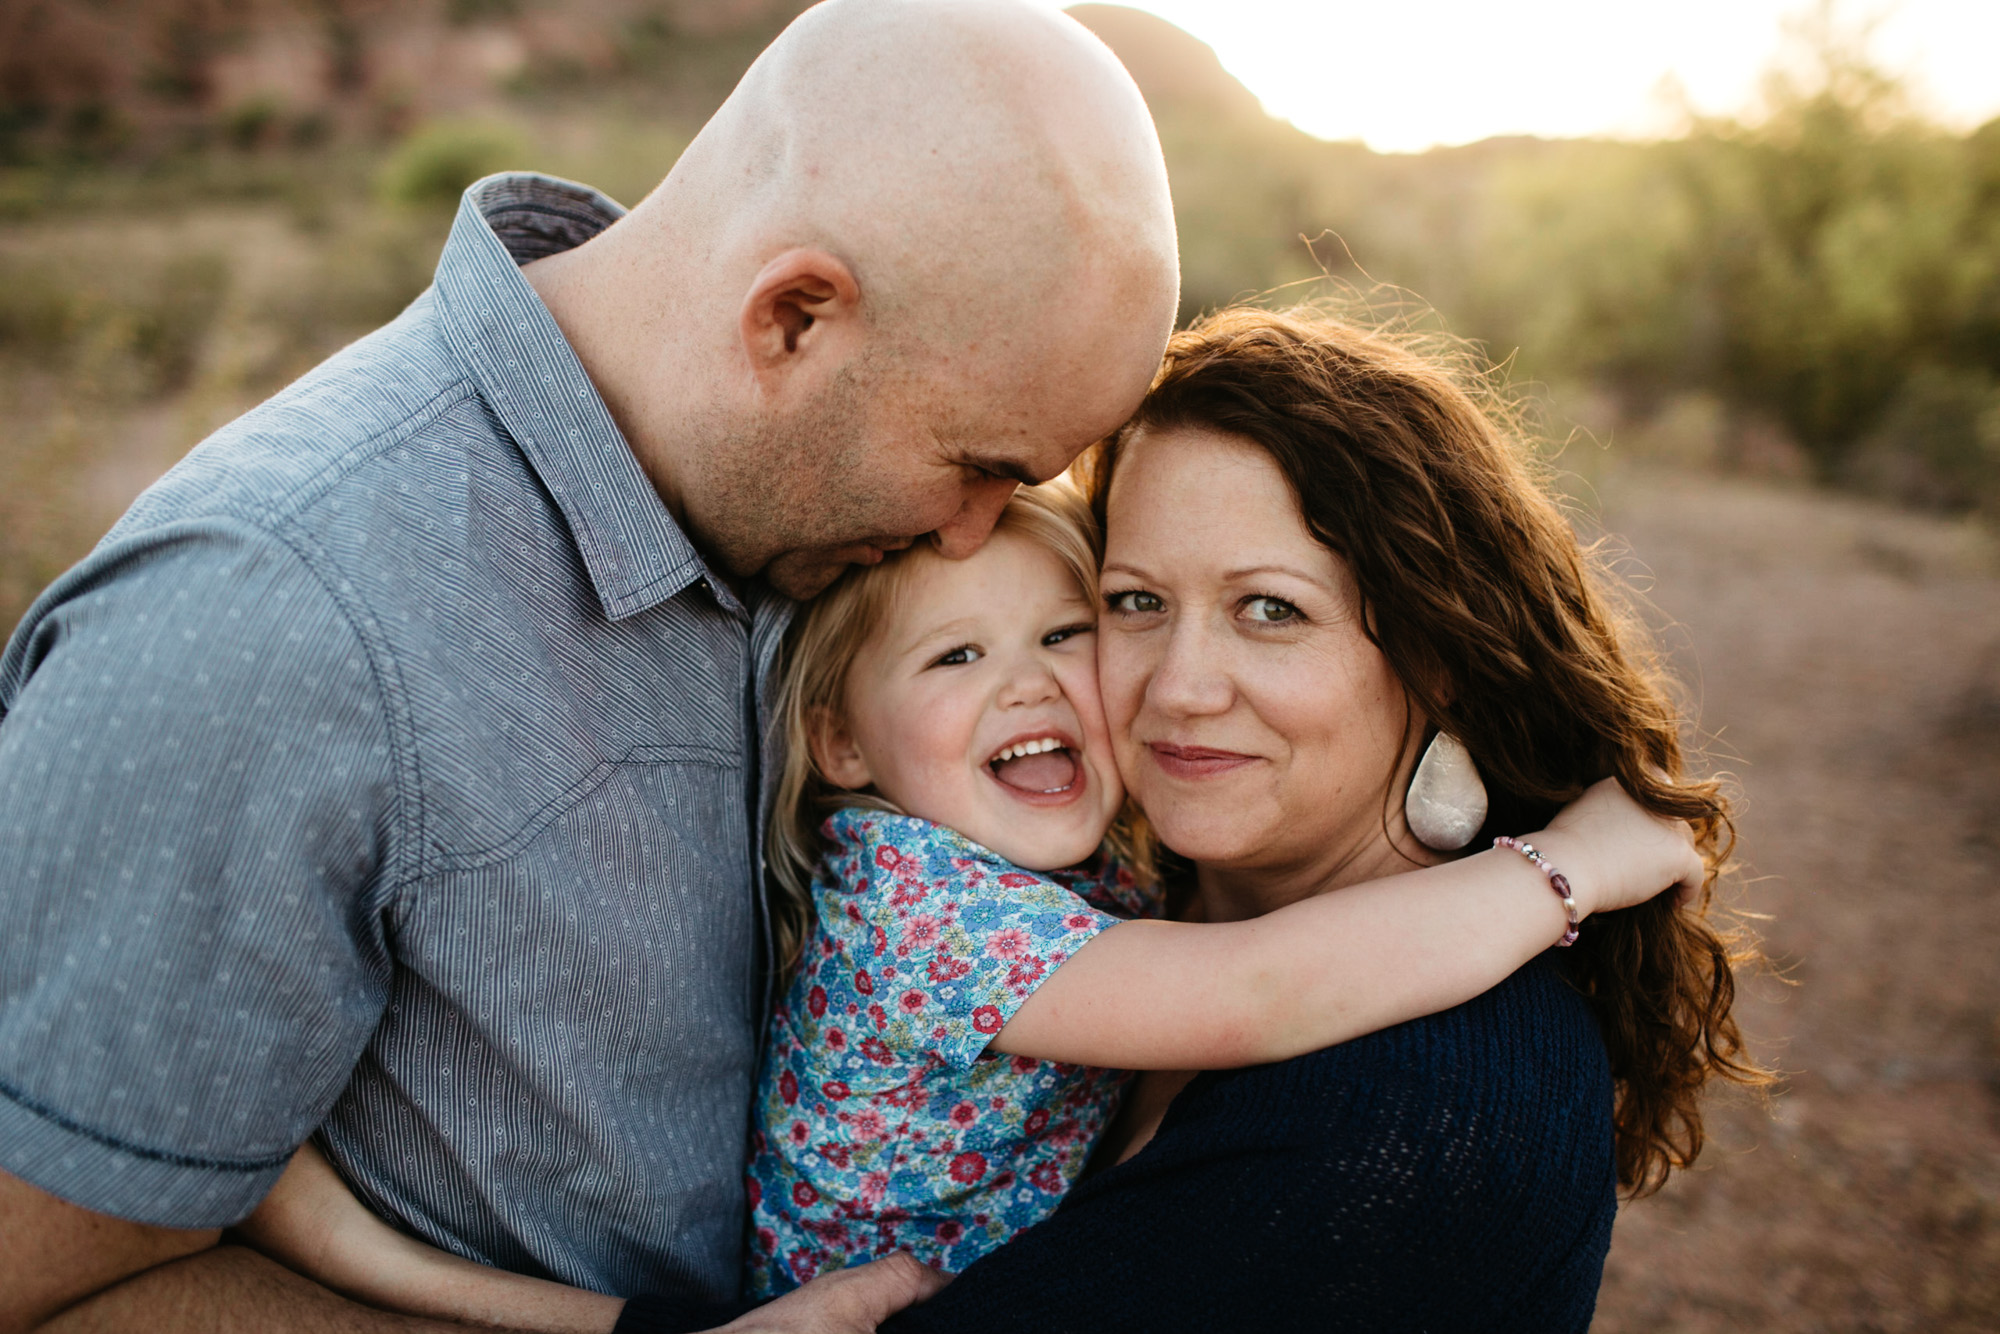 scottsdale-family-lifestyle-photographer-32.jpg